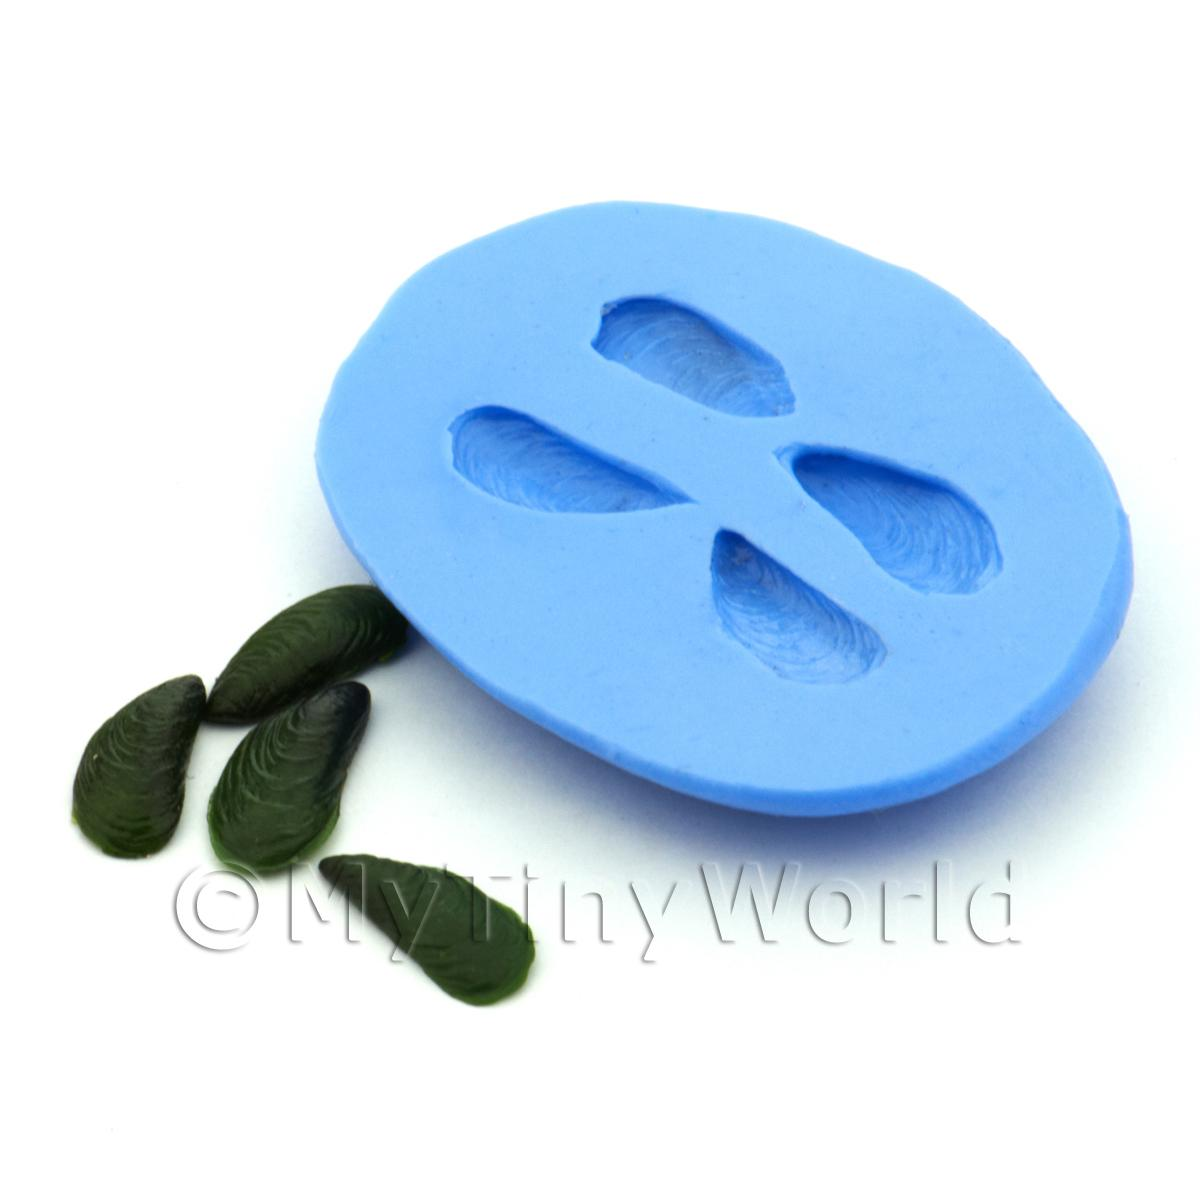 Dolls House Miniature Green Lipped Mussels Silicone Mould